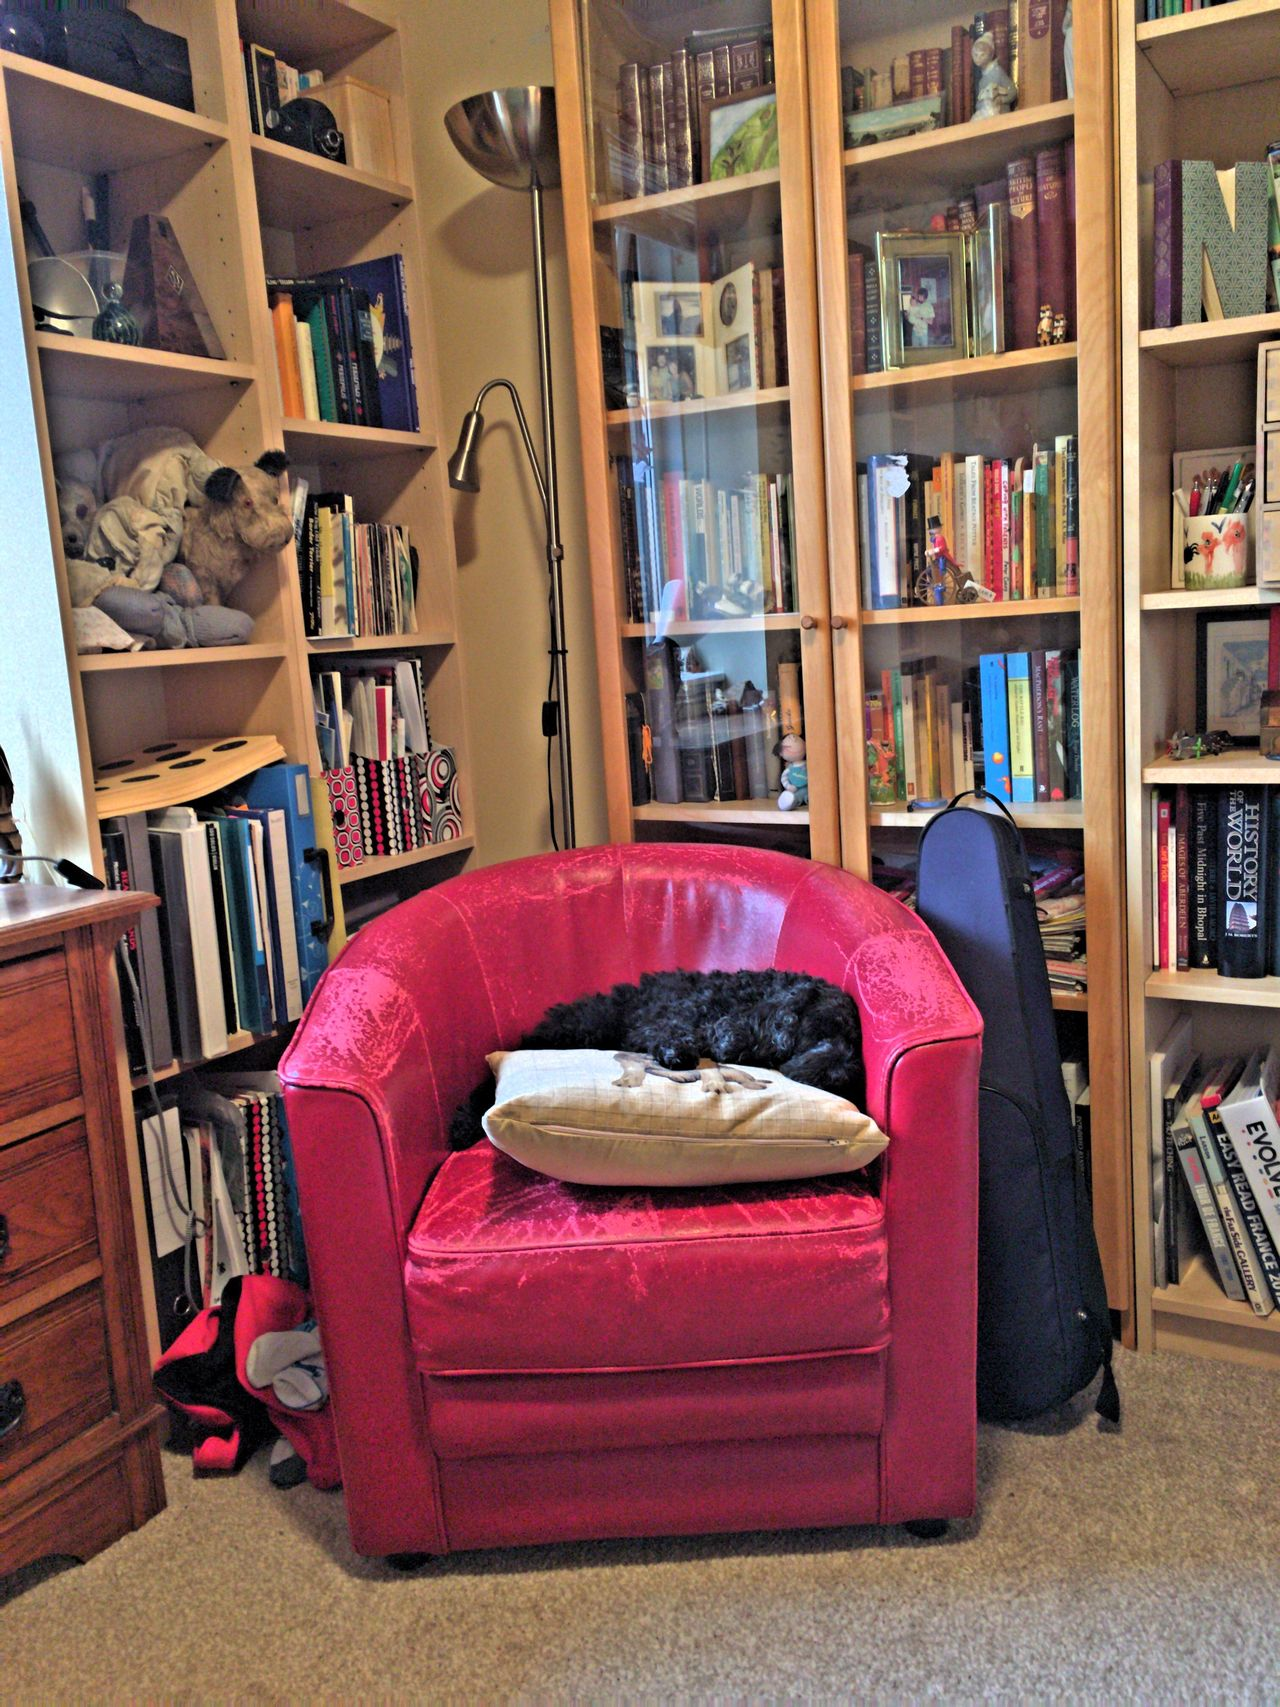 Spoodle Snoozing Study 3XSPUnity Home Interior Bookshelf Library Room Decor RoomPhotography Room Fiddle